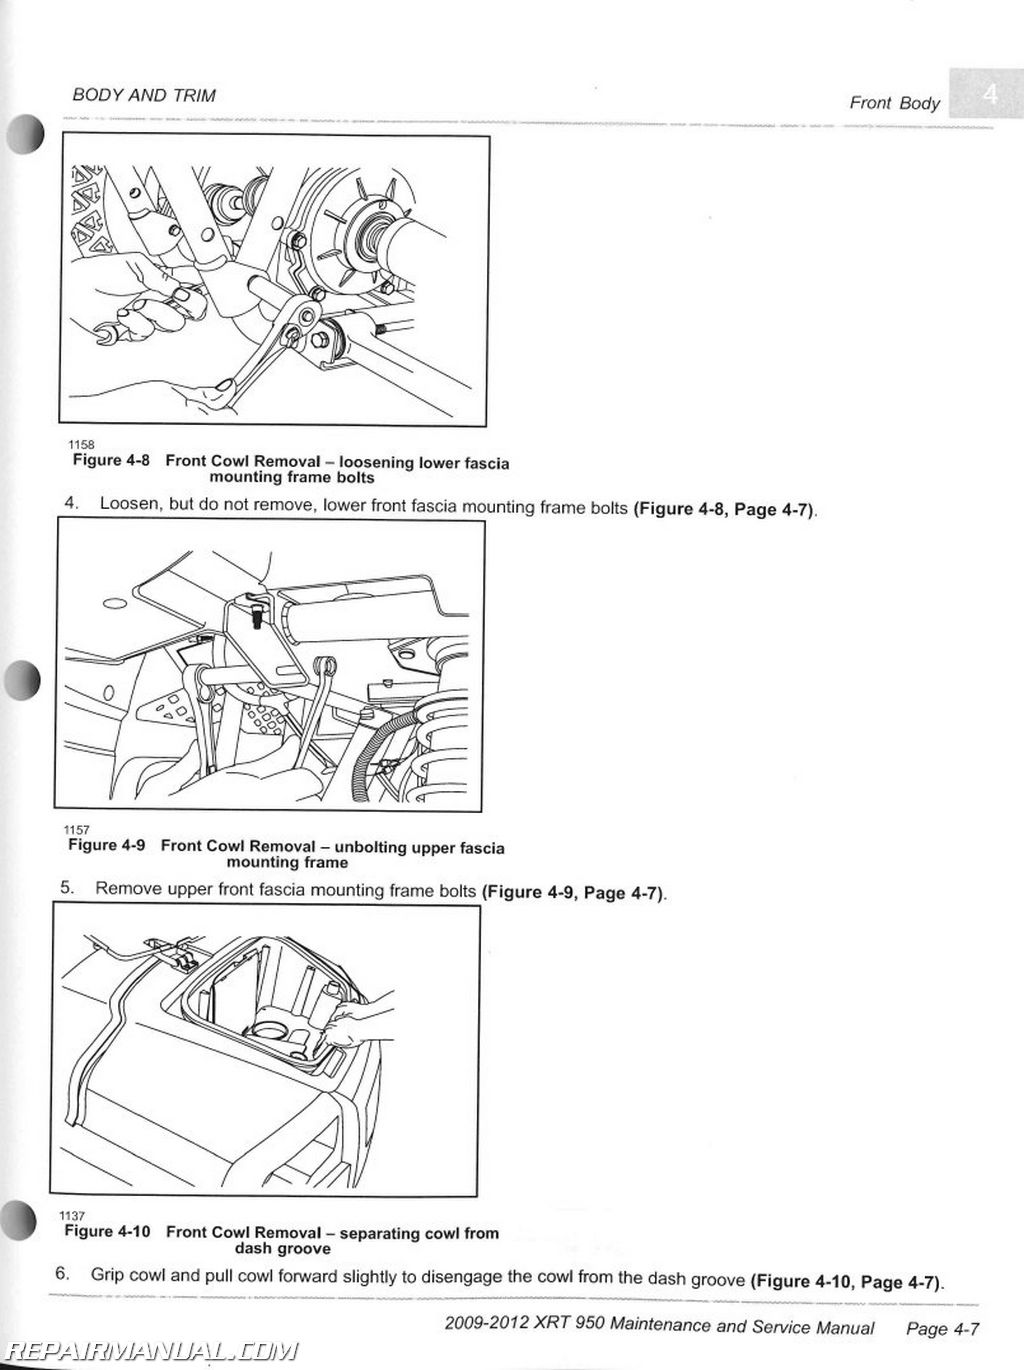 2009 2012 Club Car XRT 950 Maintenance And Service Manual page 3 looking for a club car (golf cart) 48 volt wiring diagram to 2009 48 volt club car wiring diagram at virtualis.co